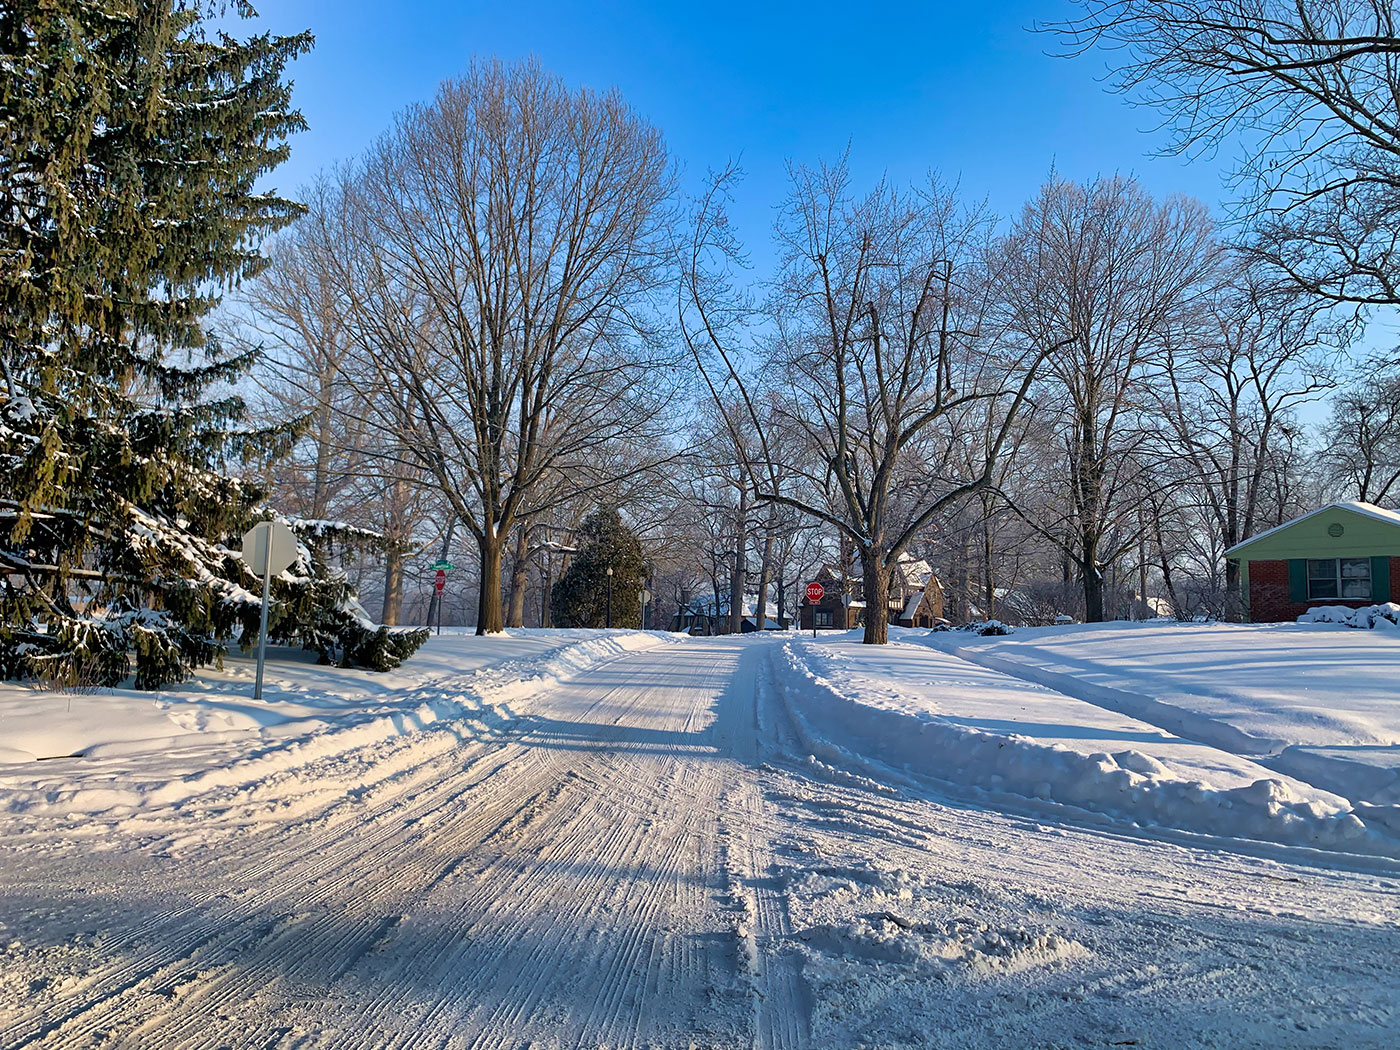 A sunny day in Wildwood Park after a snowstorm